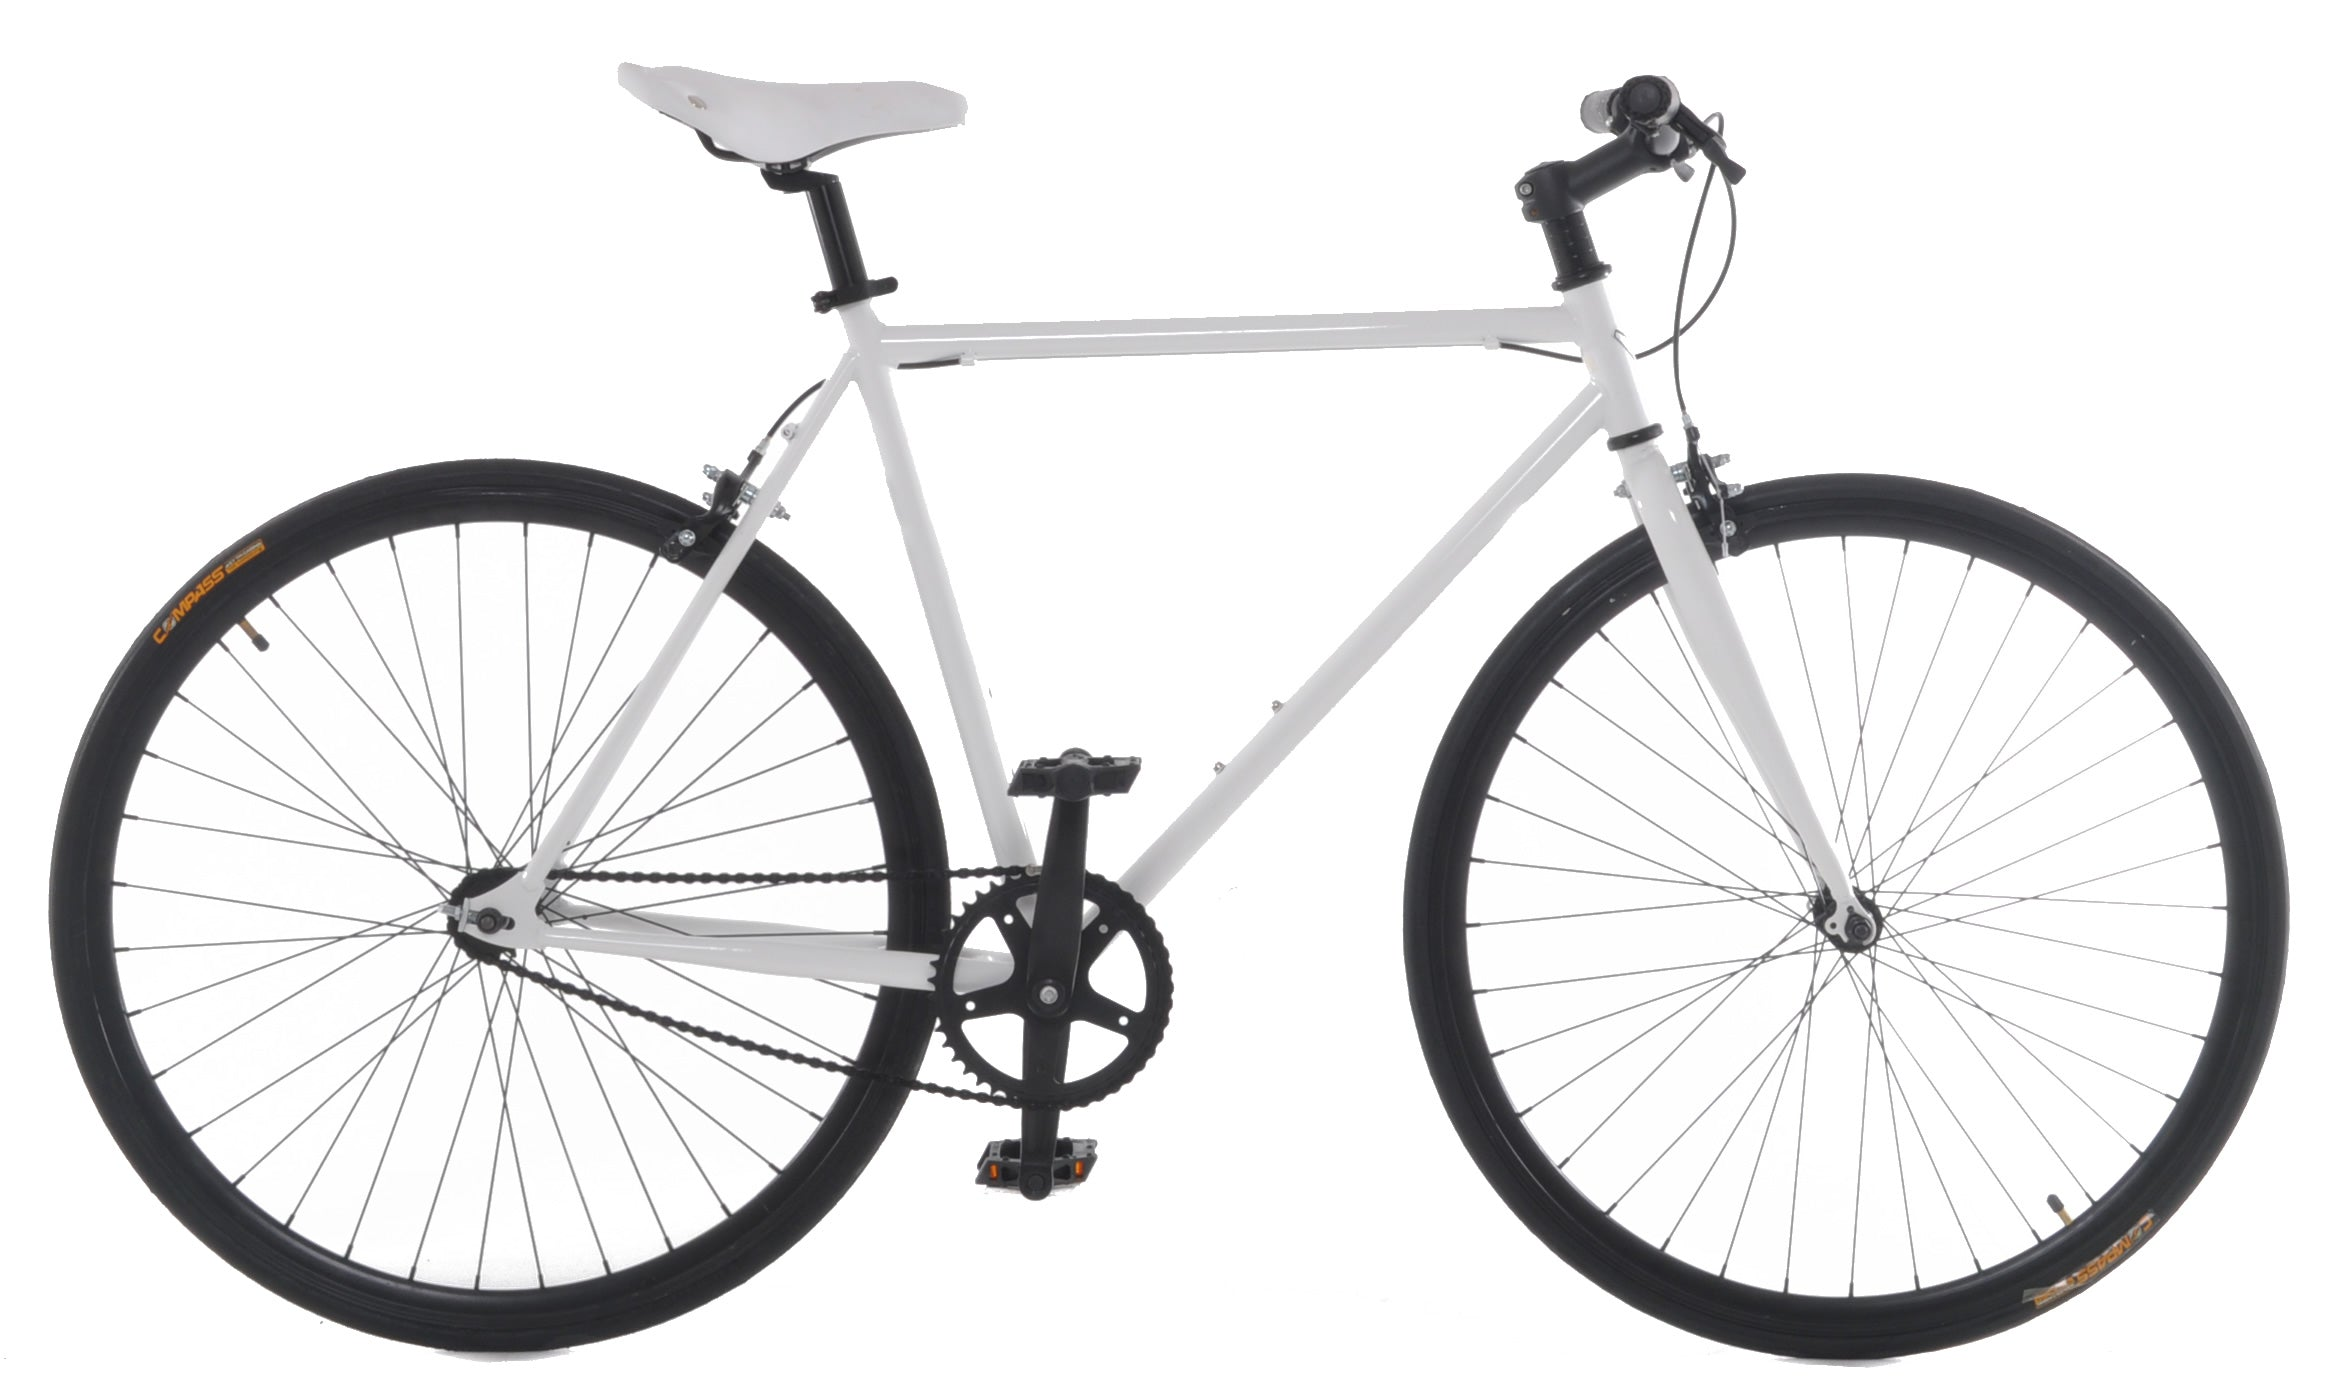 products/700-FIXIE-WHT-BLK__01.jpg_1.jpg